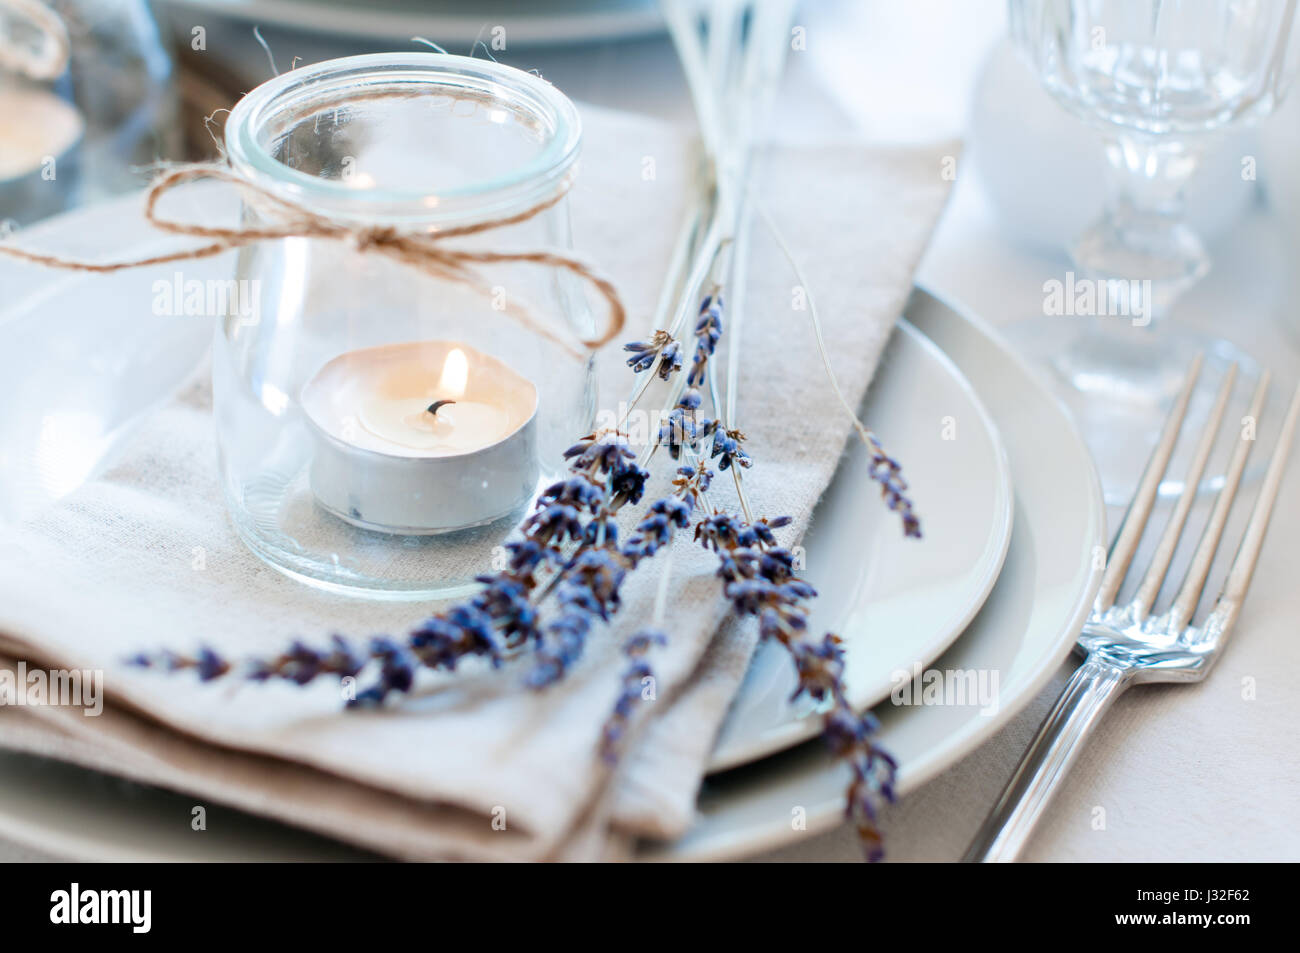 Dining table setting at Provence style with candles lavender vintage crockery and cutlery closeup & Dining table setting at Provence style with candles lavender ...